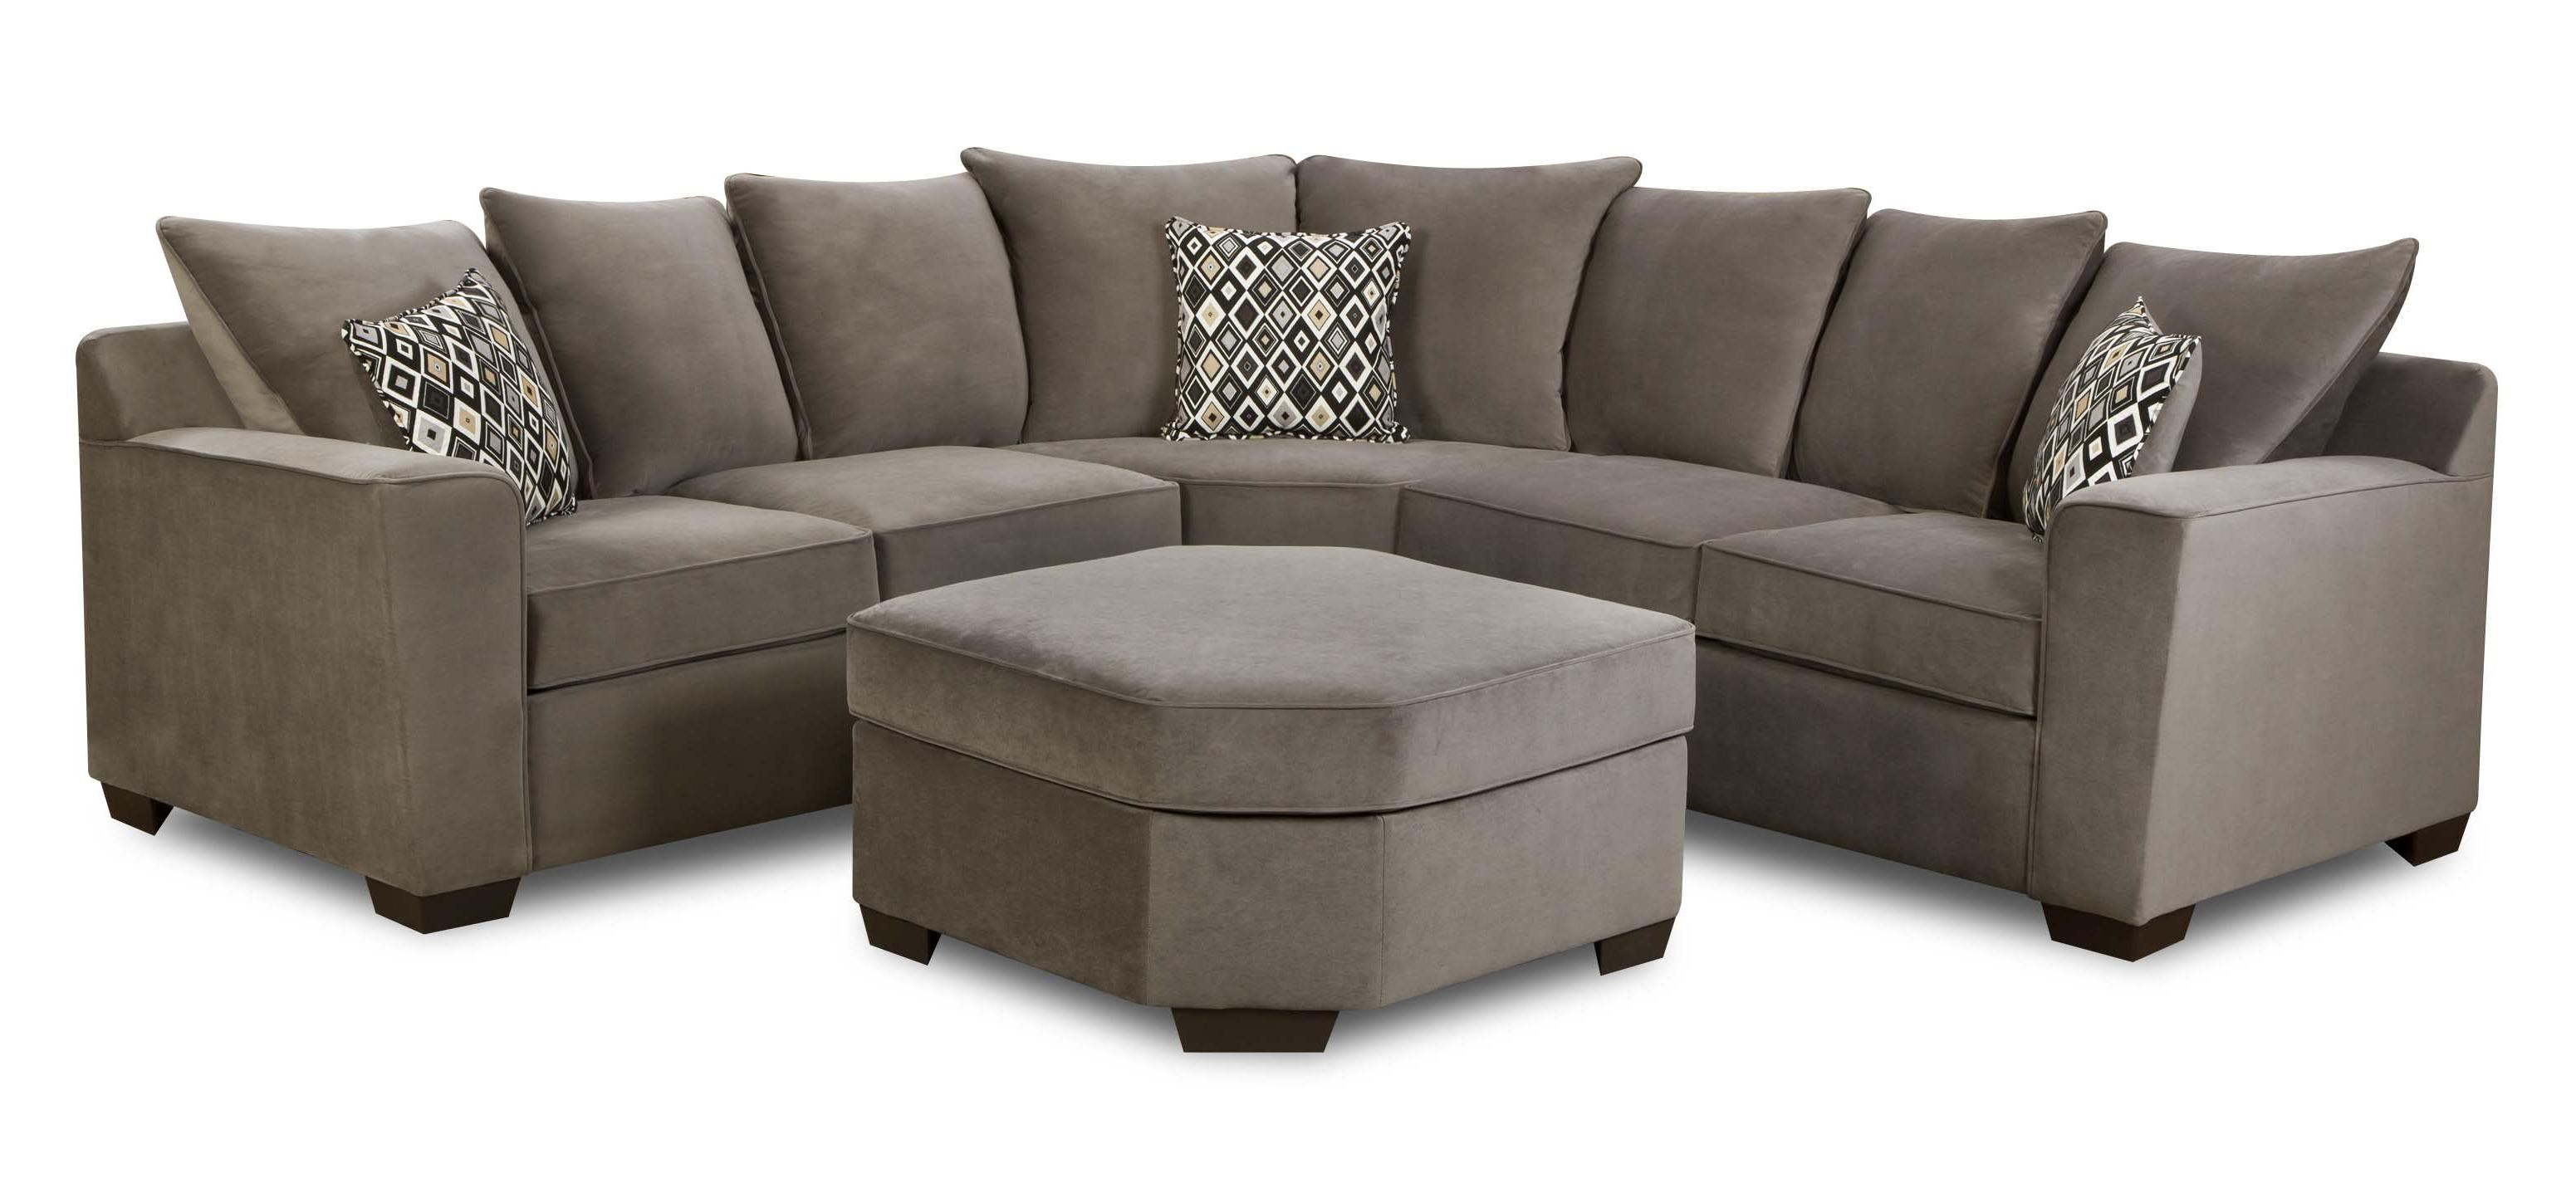 simmons small sectional sofa remove pen from leather wedge byron curved corner